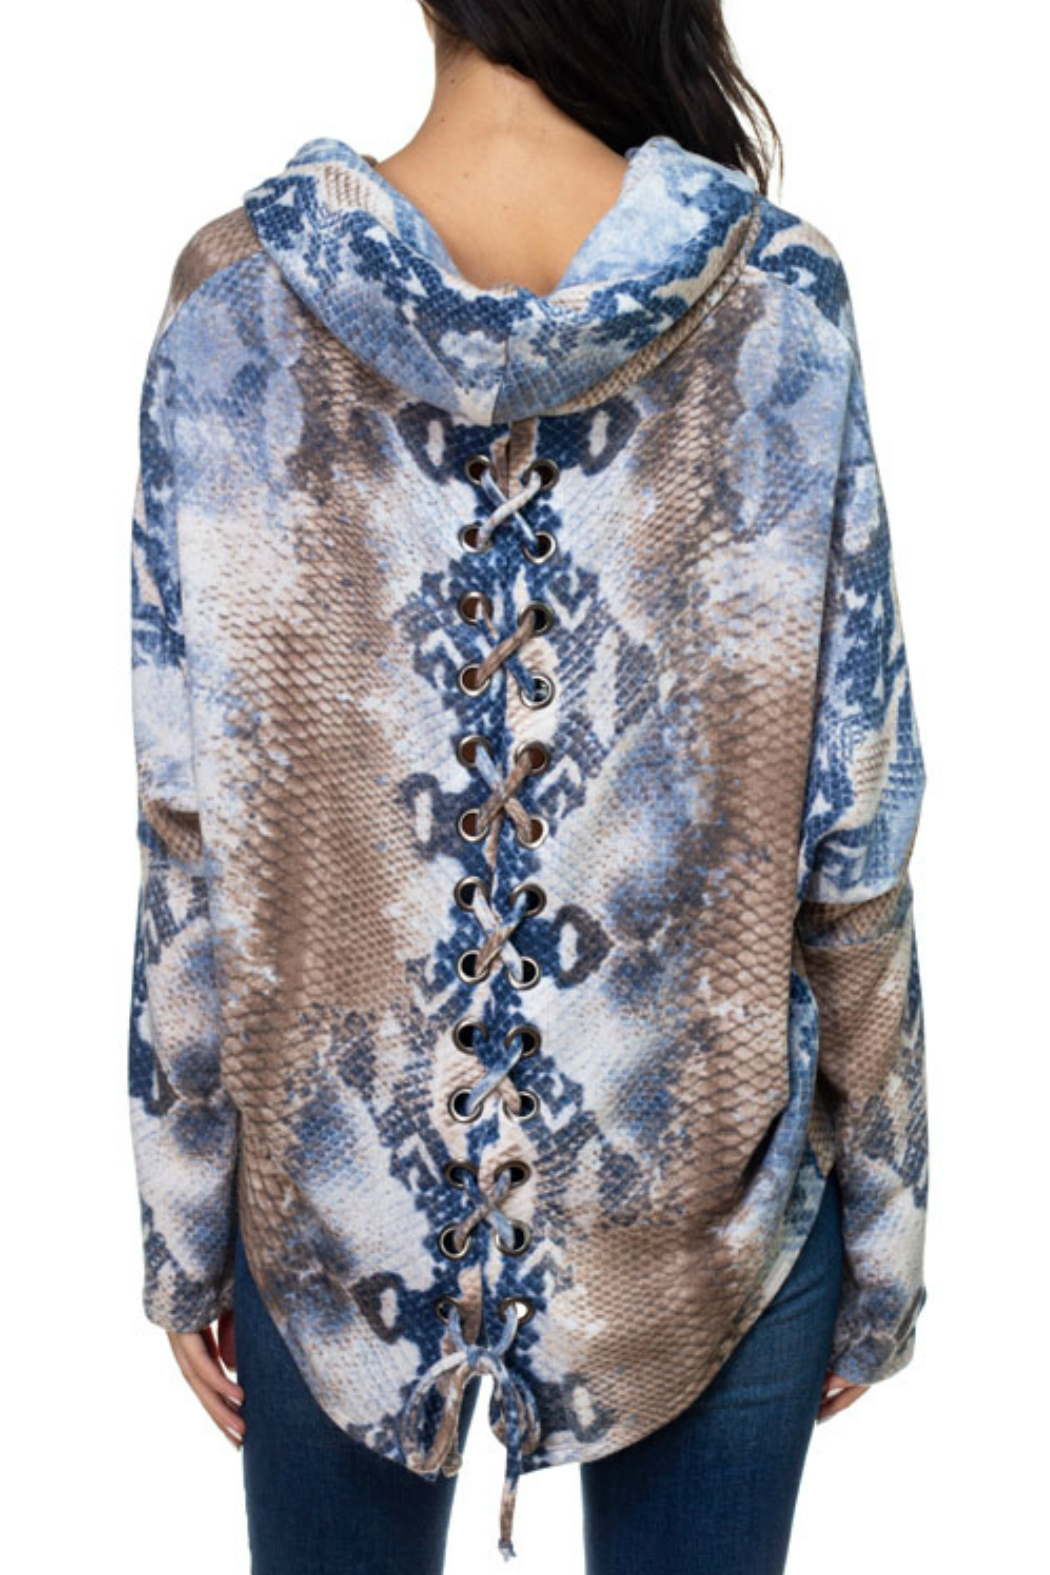 Ariella USA Print Lace-Up Back Cowl Neck Top - Front Full Image